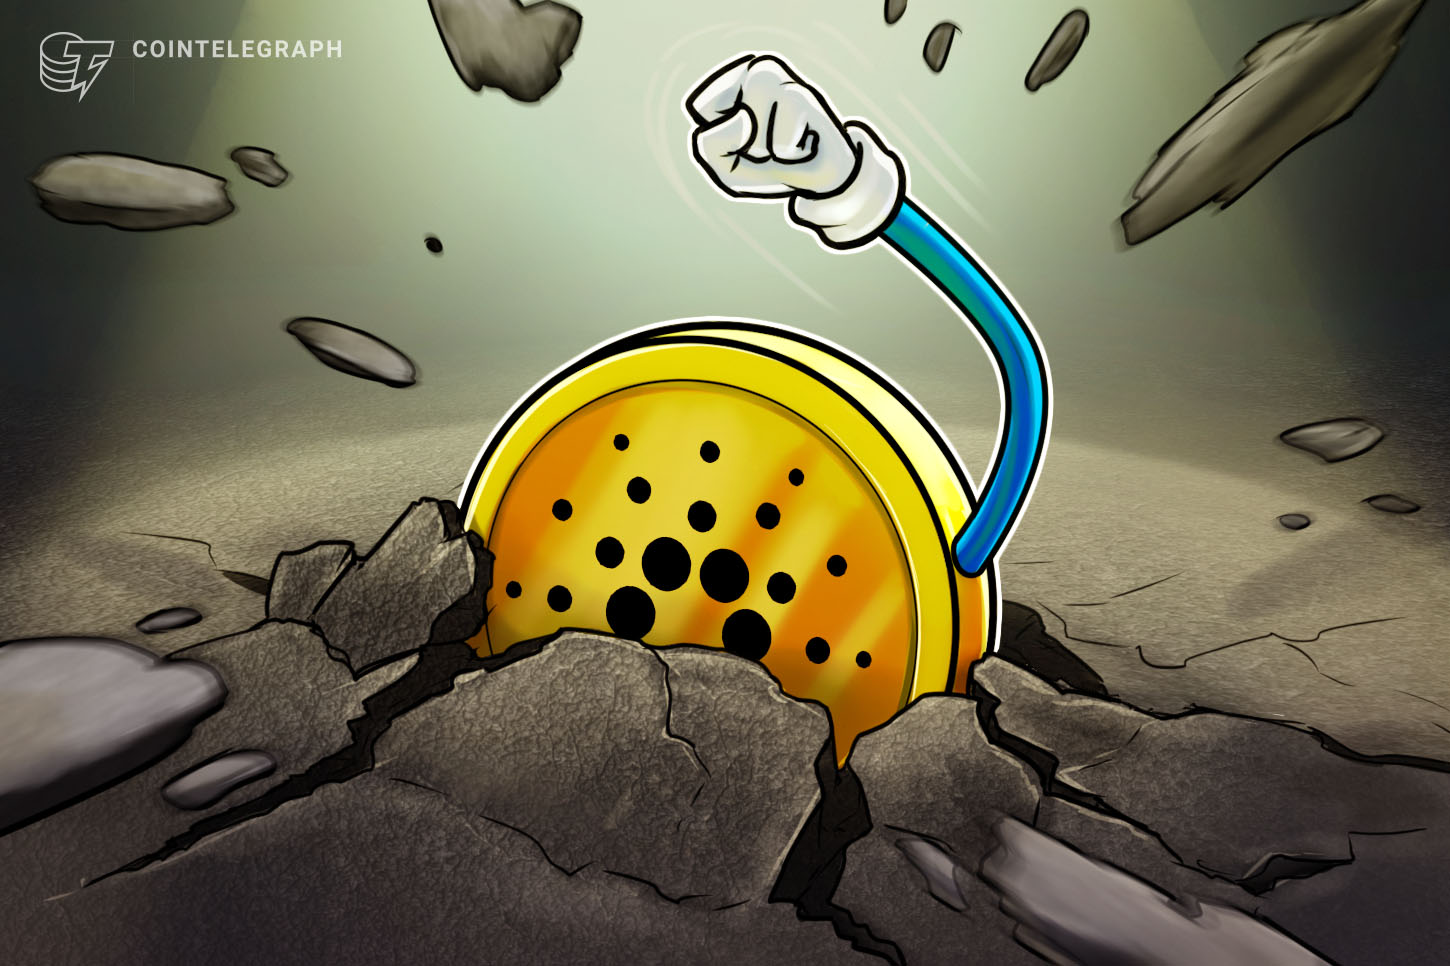 ADA hits $2 first the time since May ahead of Cardano smart contract announcement